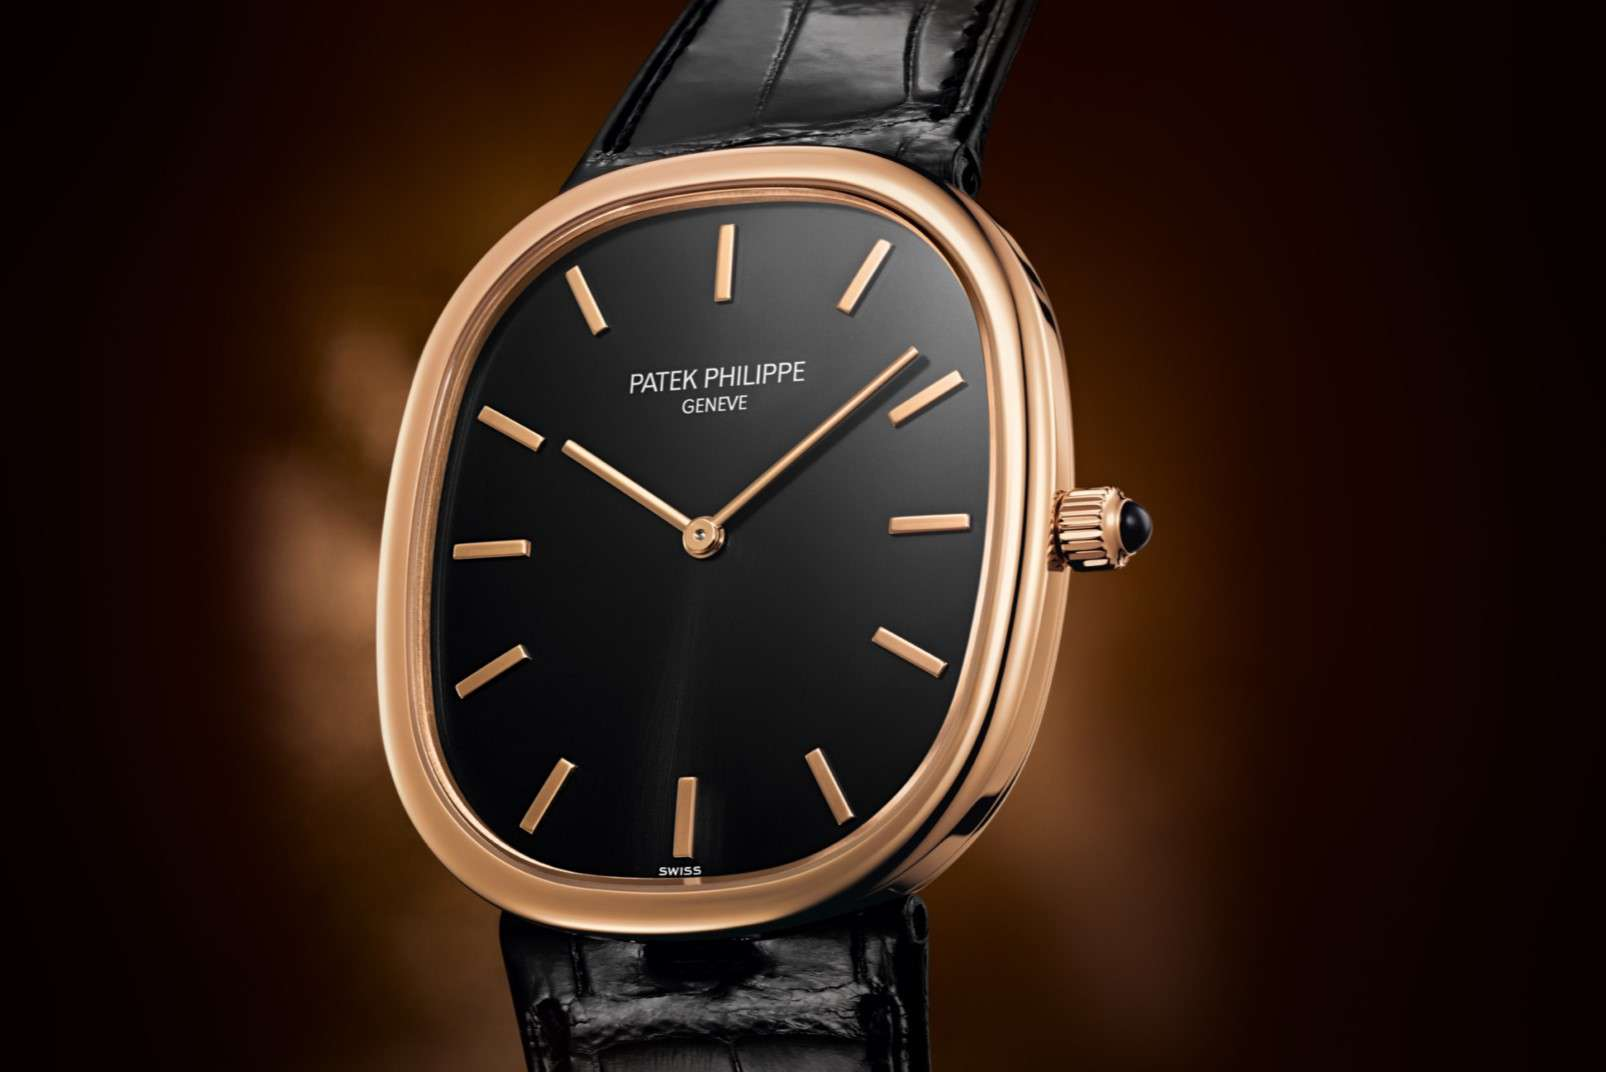 Patek Philippe Golden Ellipse 5738R dress watch